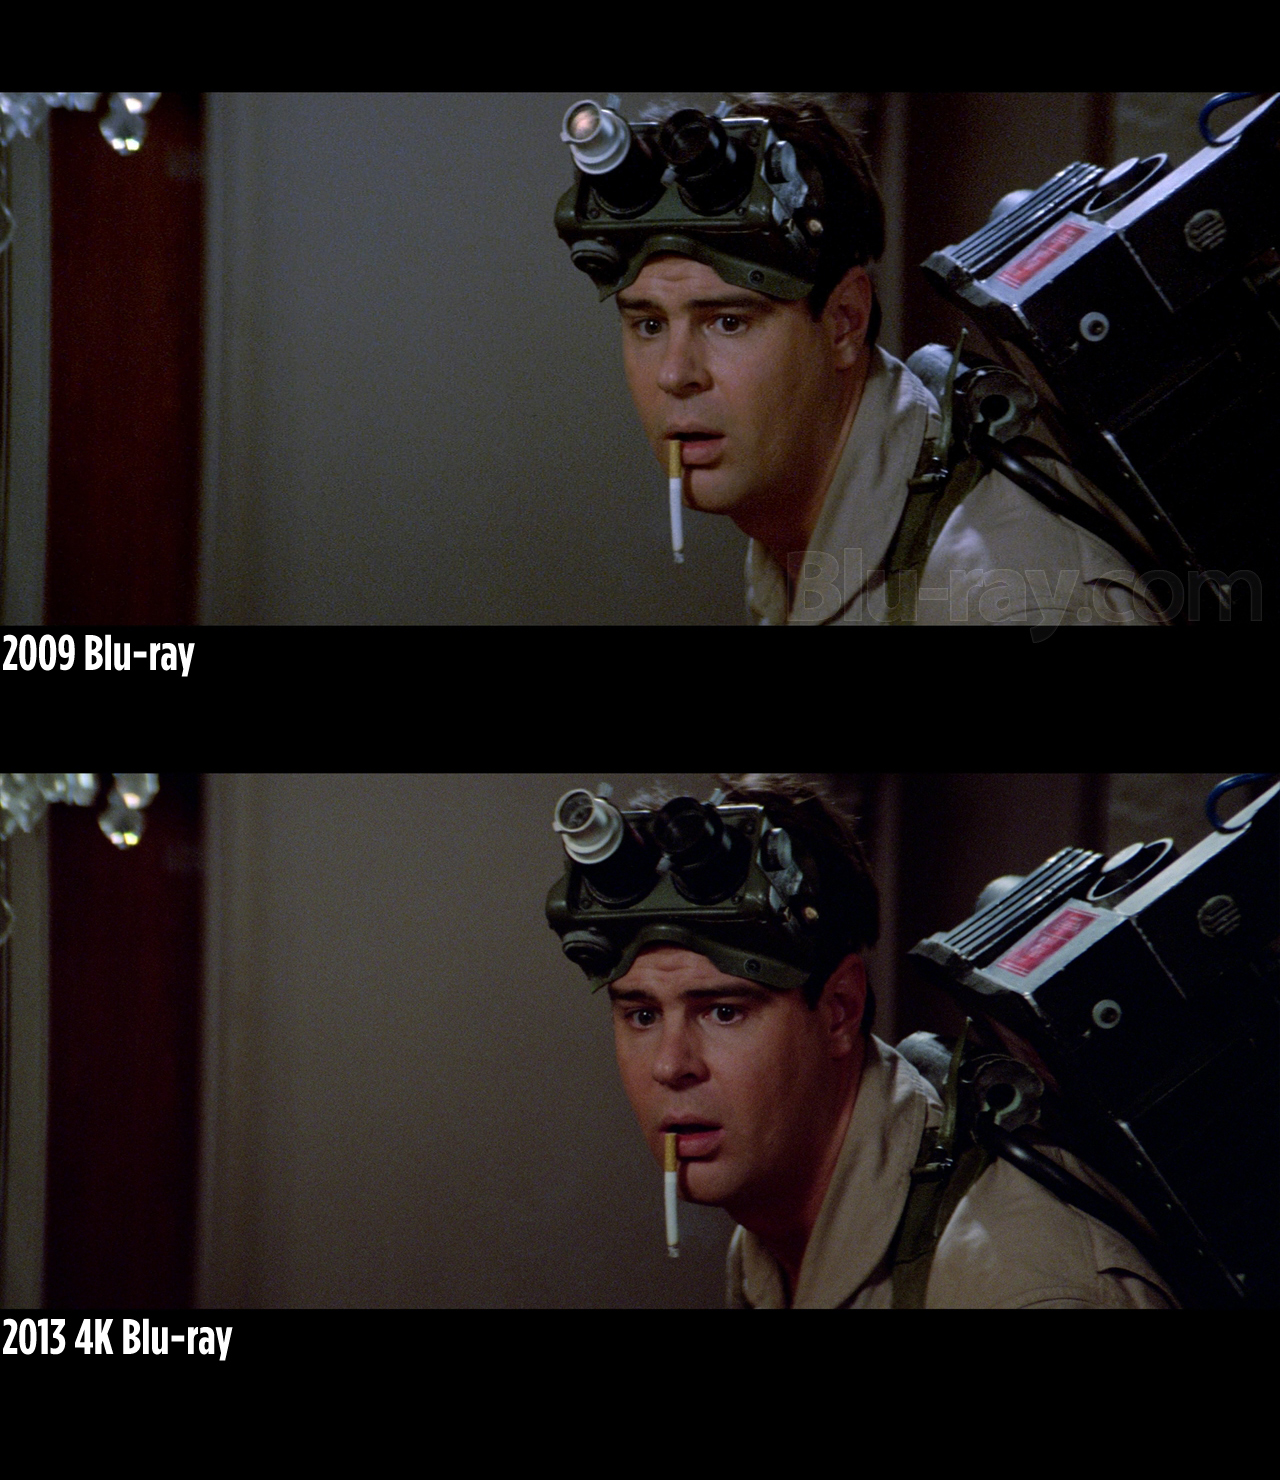 screen grabs comparison shots of ghostbusters 4k blu ray. Black Bedroom Furniture Sets. Home Design Ideas